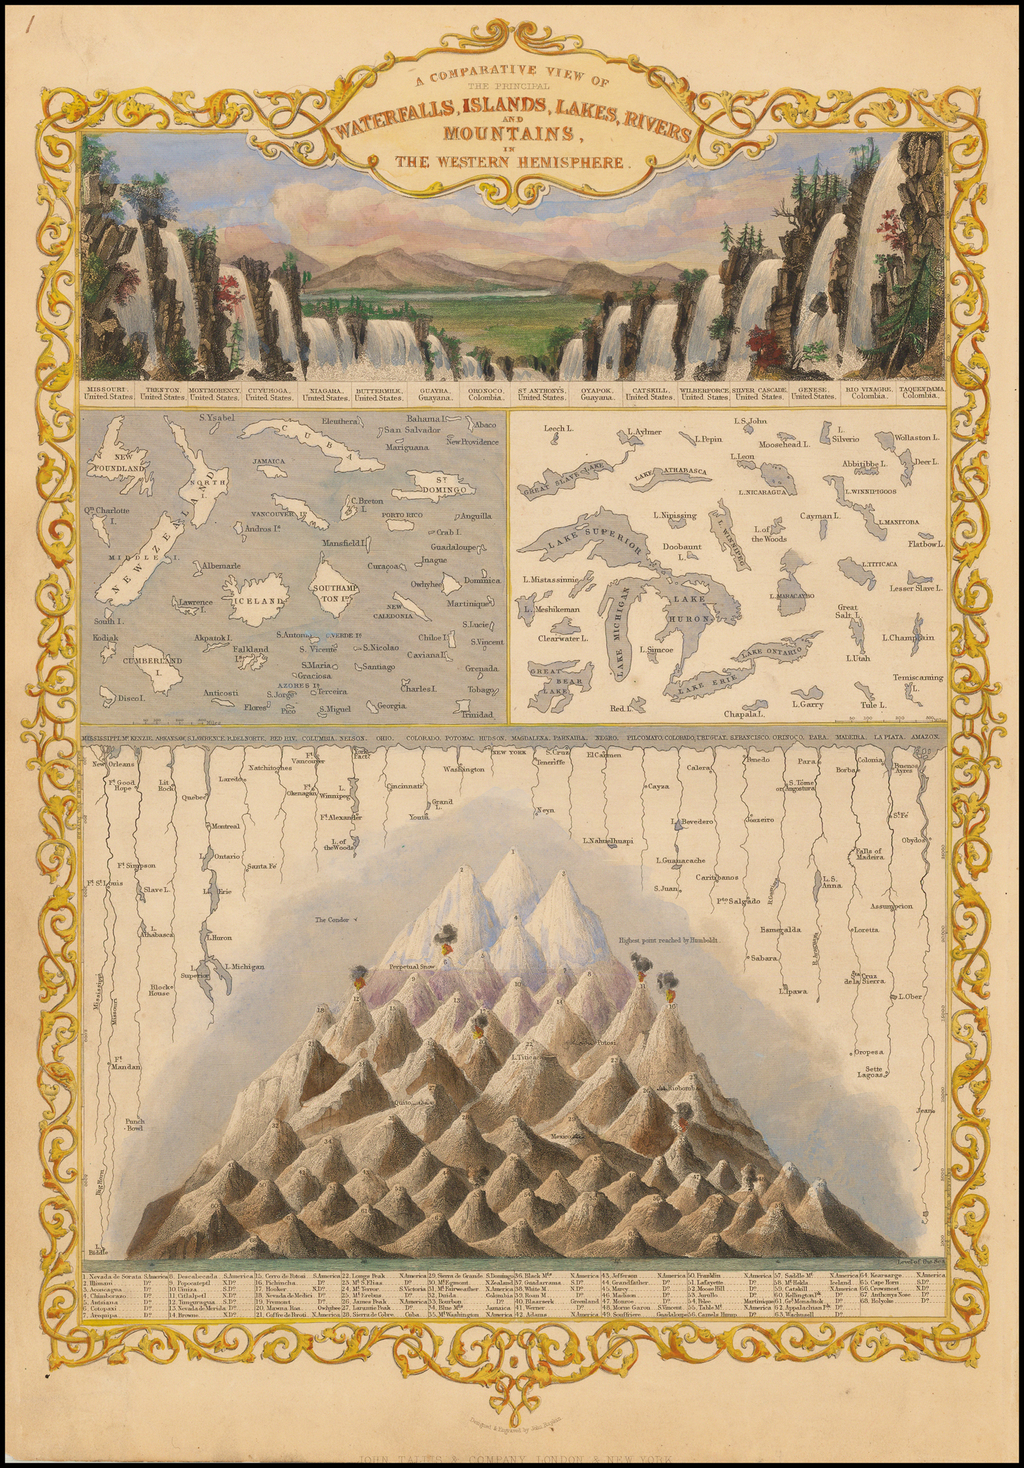 A Comparative View of the Principal Waterfalls, Islands, Lakes, Rivers, and Mountains in the Western Hemisphere By John Tallis